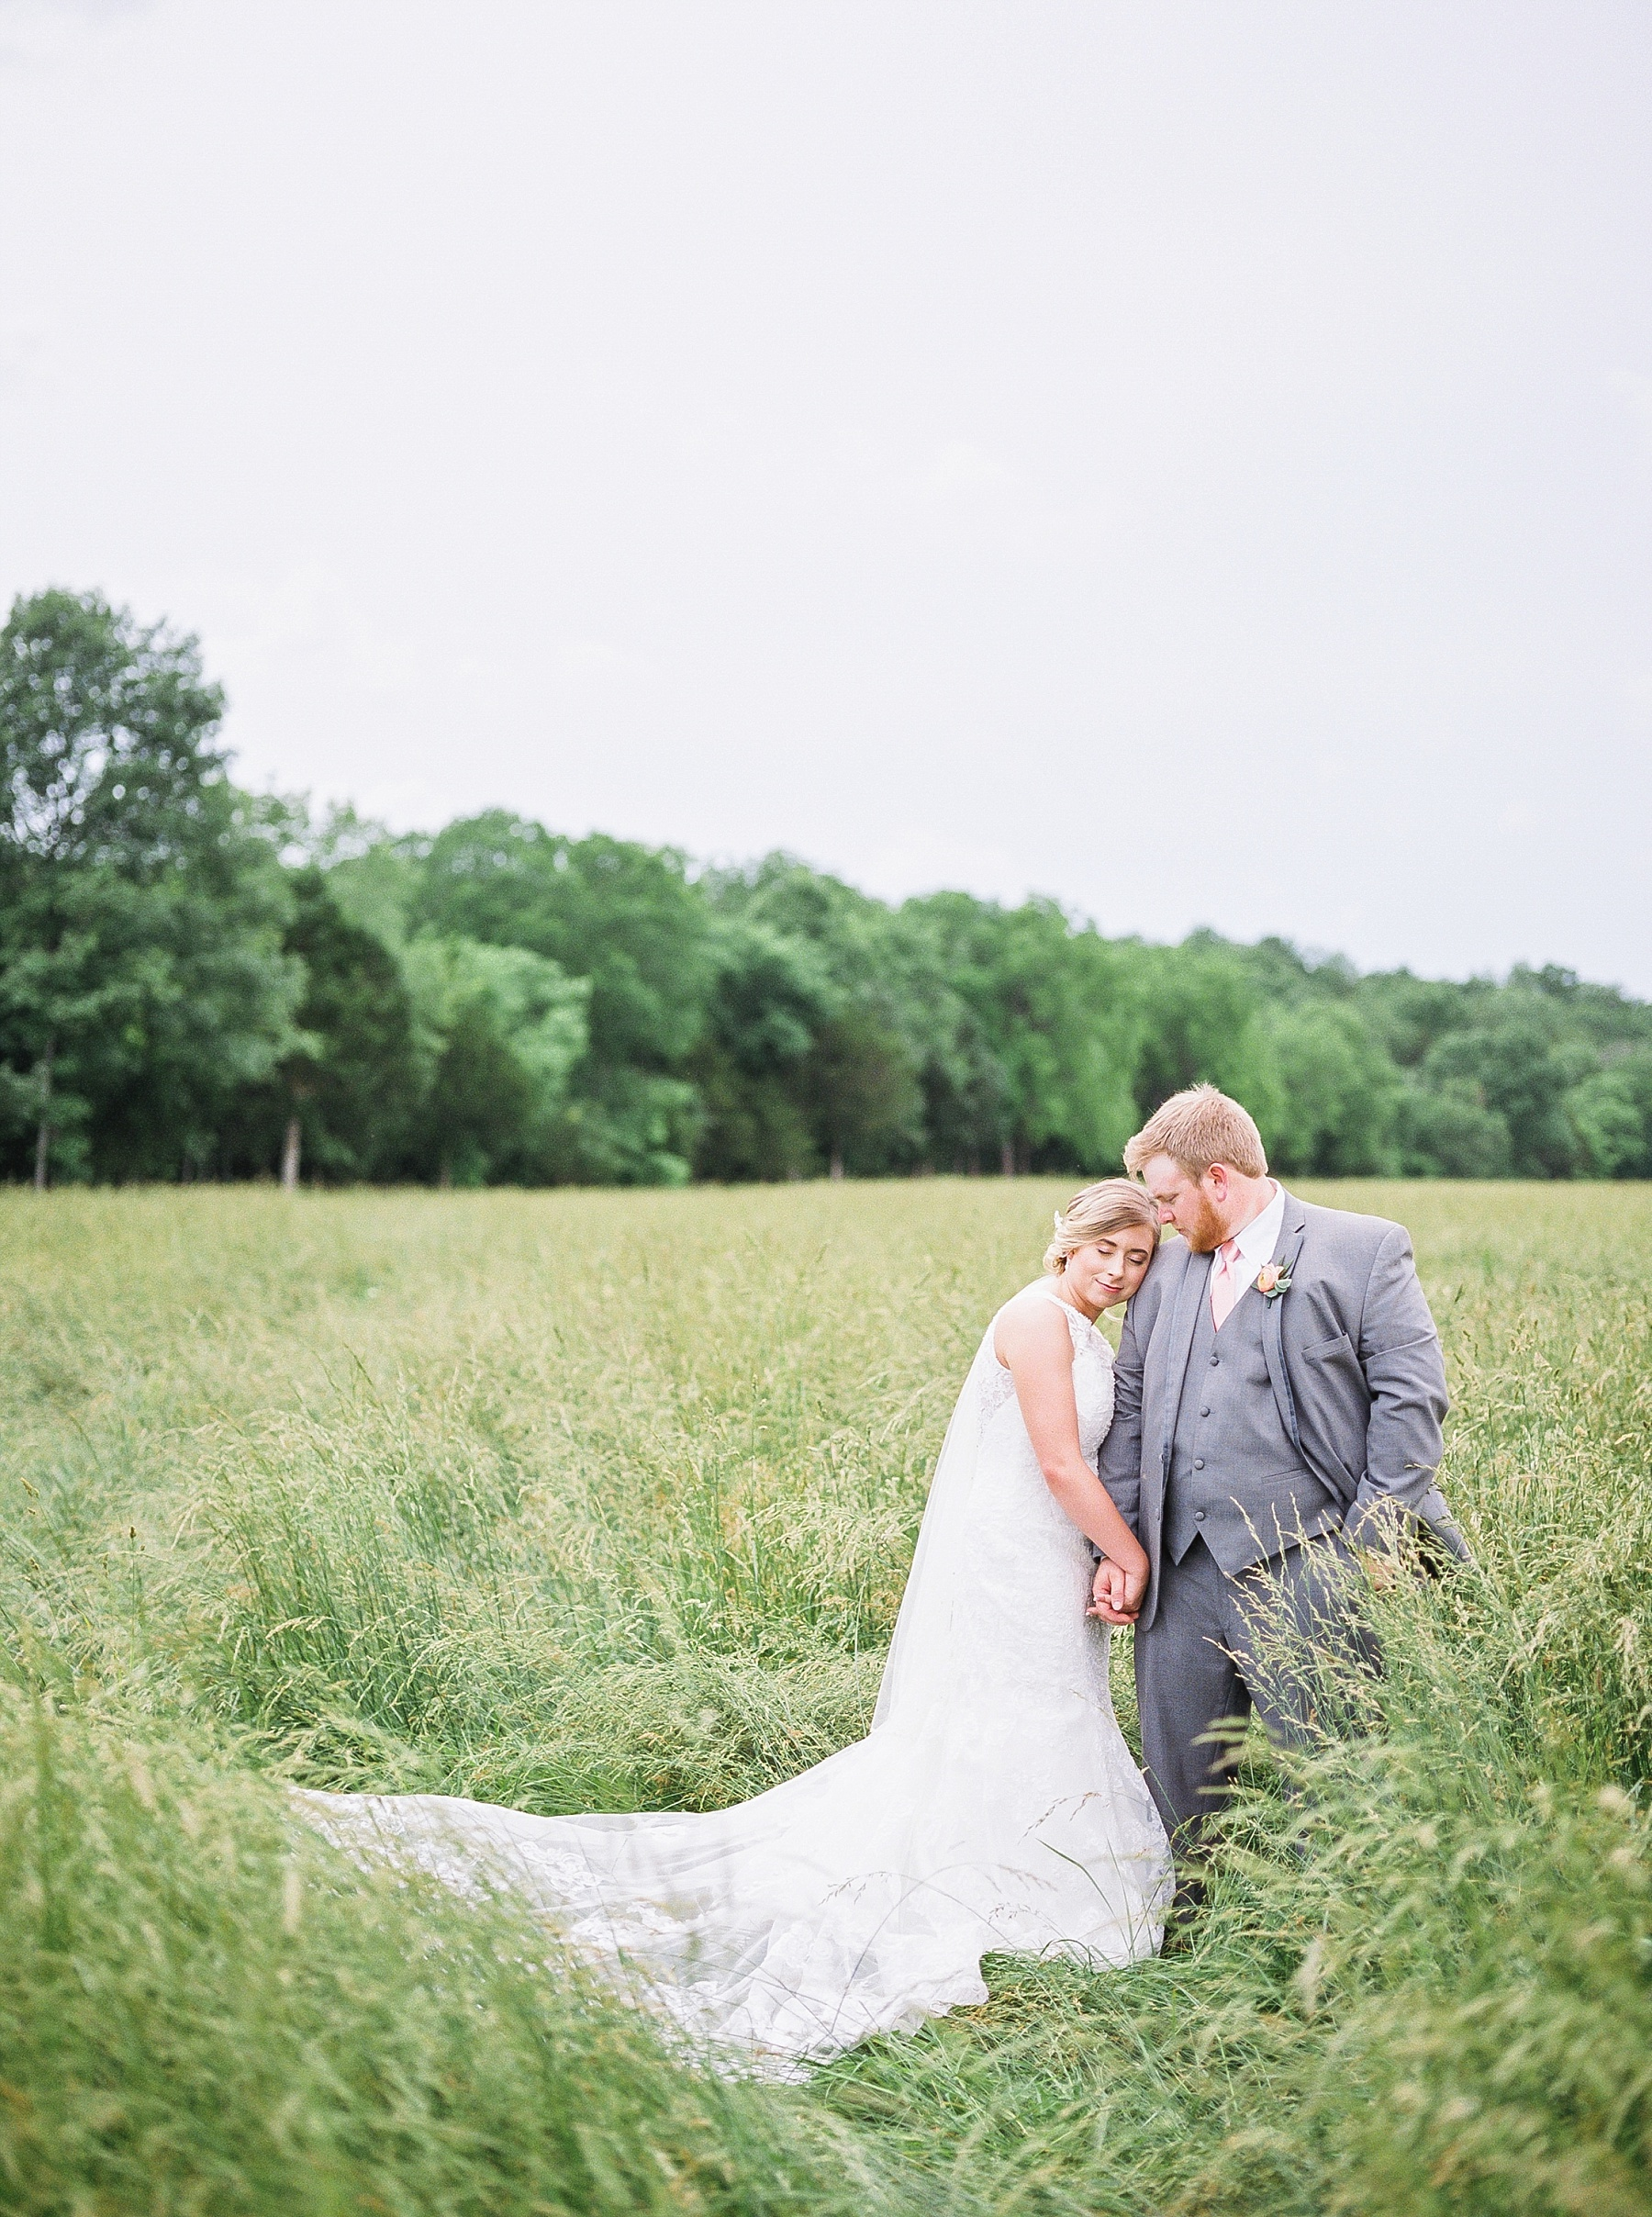 Peach and Dusty Blue Spring Wedding in Rolling Hills of Mid Missouri by Kelsi Kliethermes Photography Best Missouri and Maui Wedding Photographer_0046.jpg